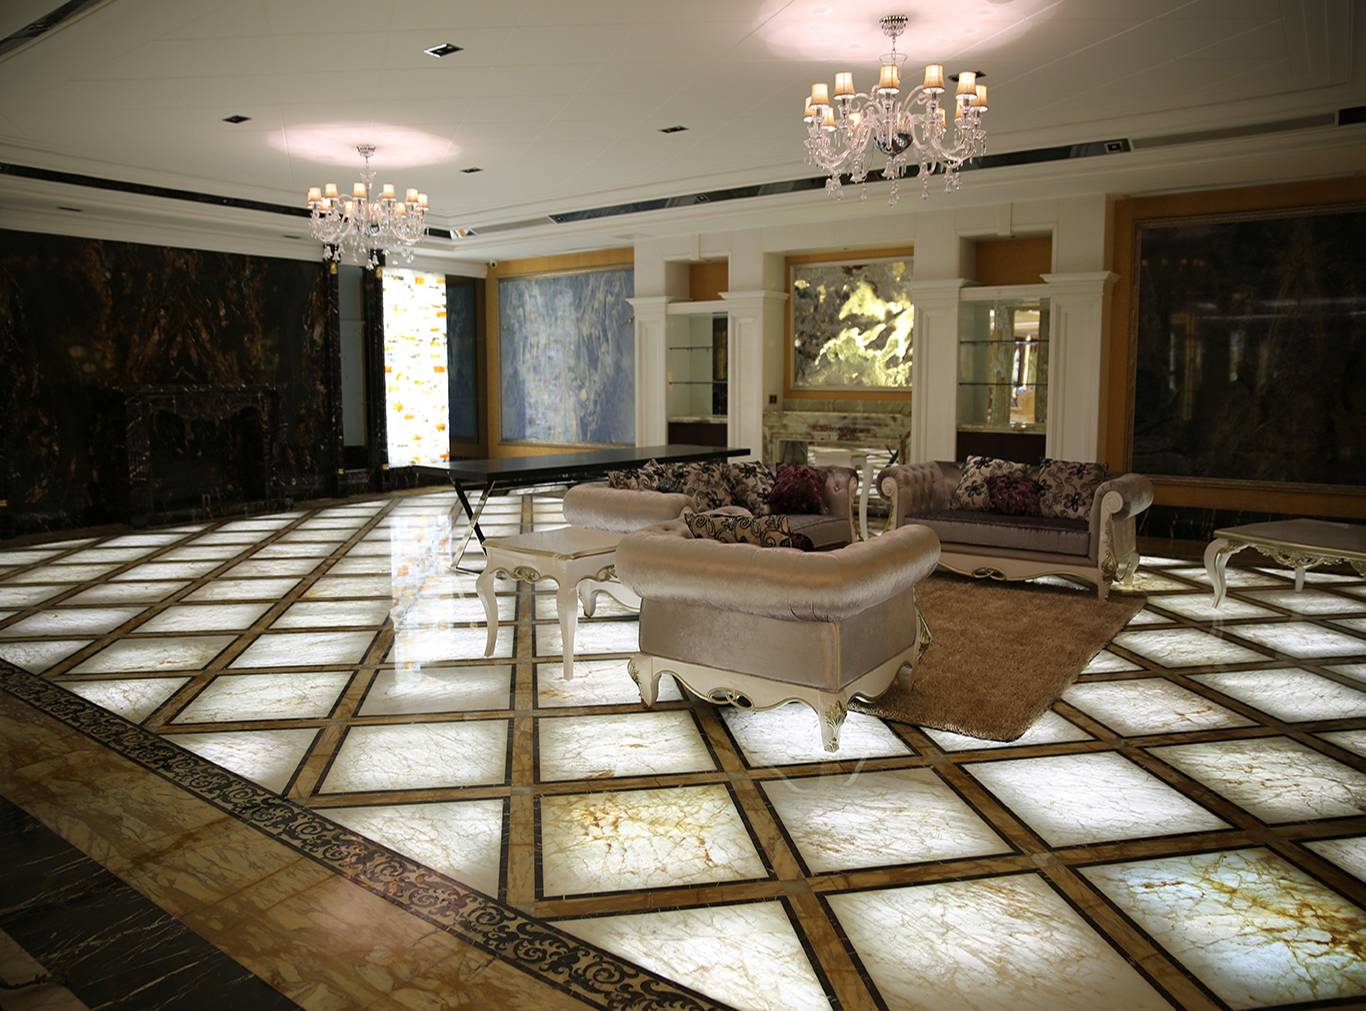 White onyx backlit floor